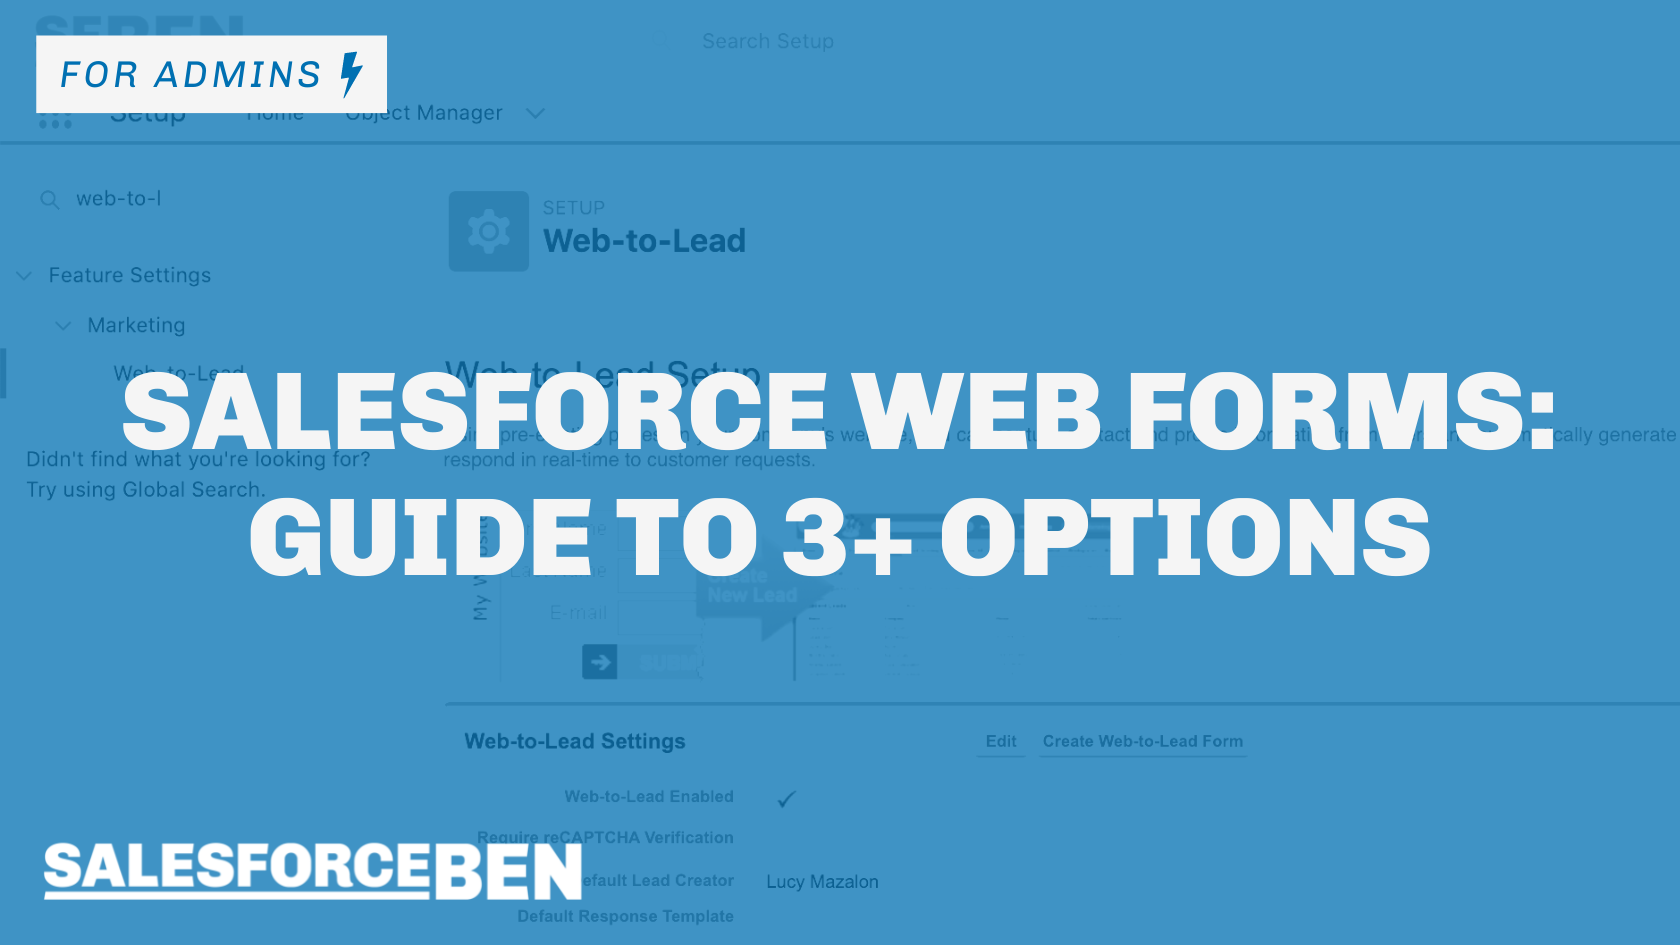 Salesforce Web Forms: Guide to 3+ Options